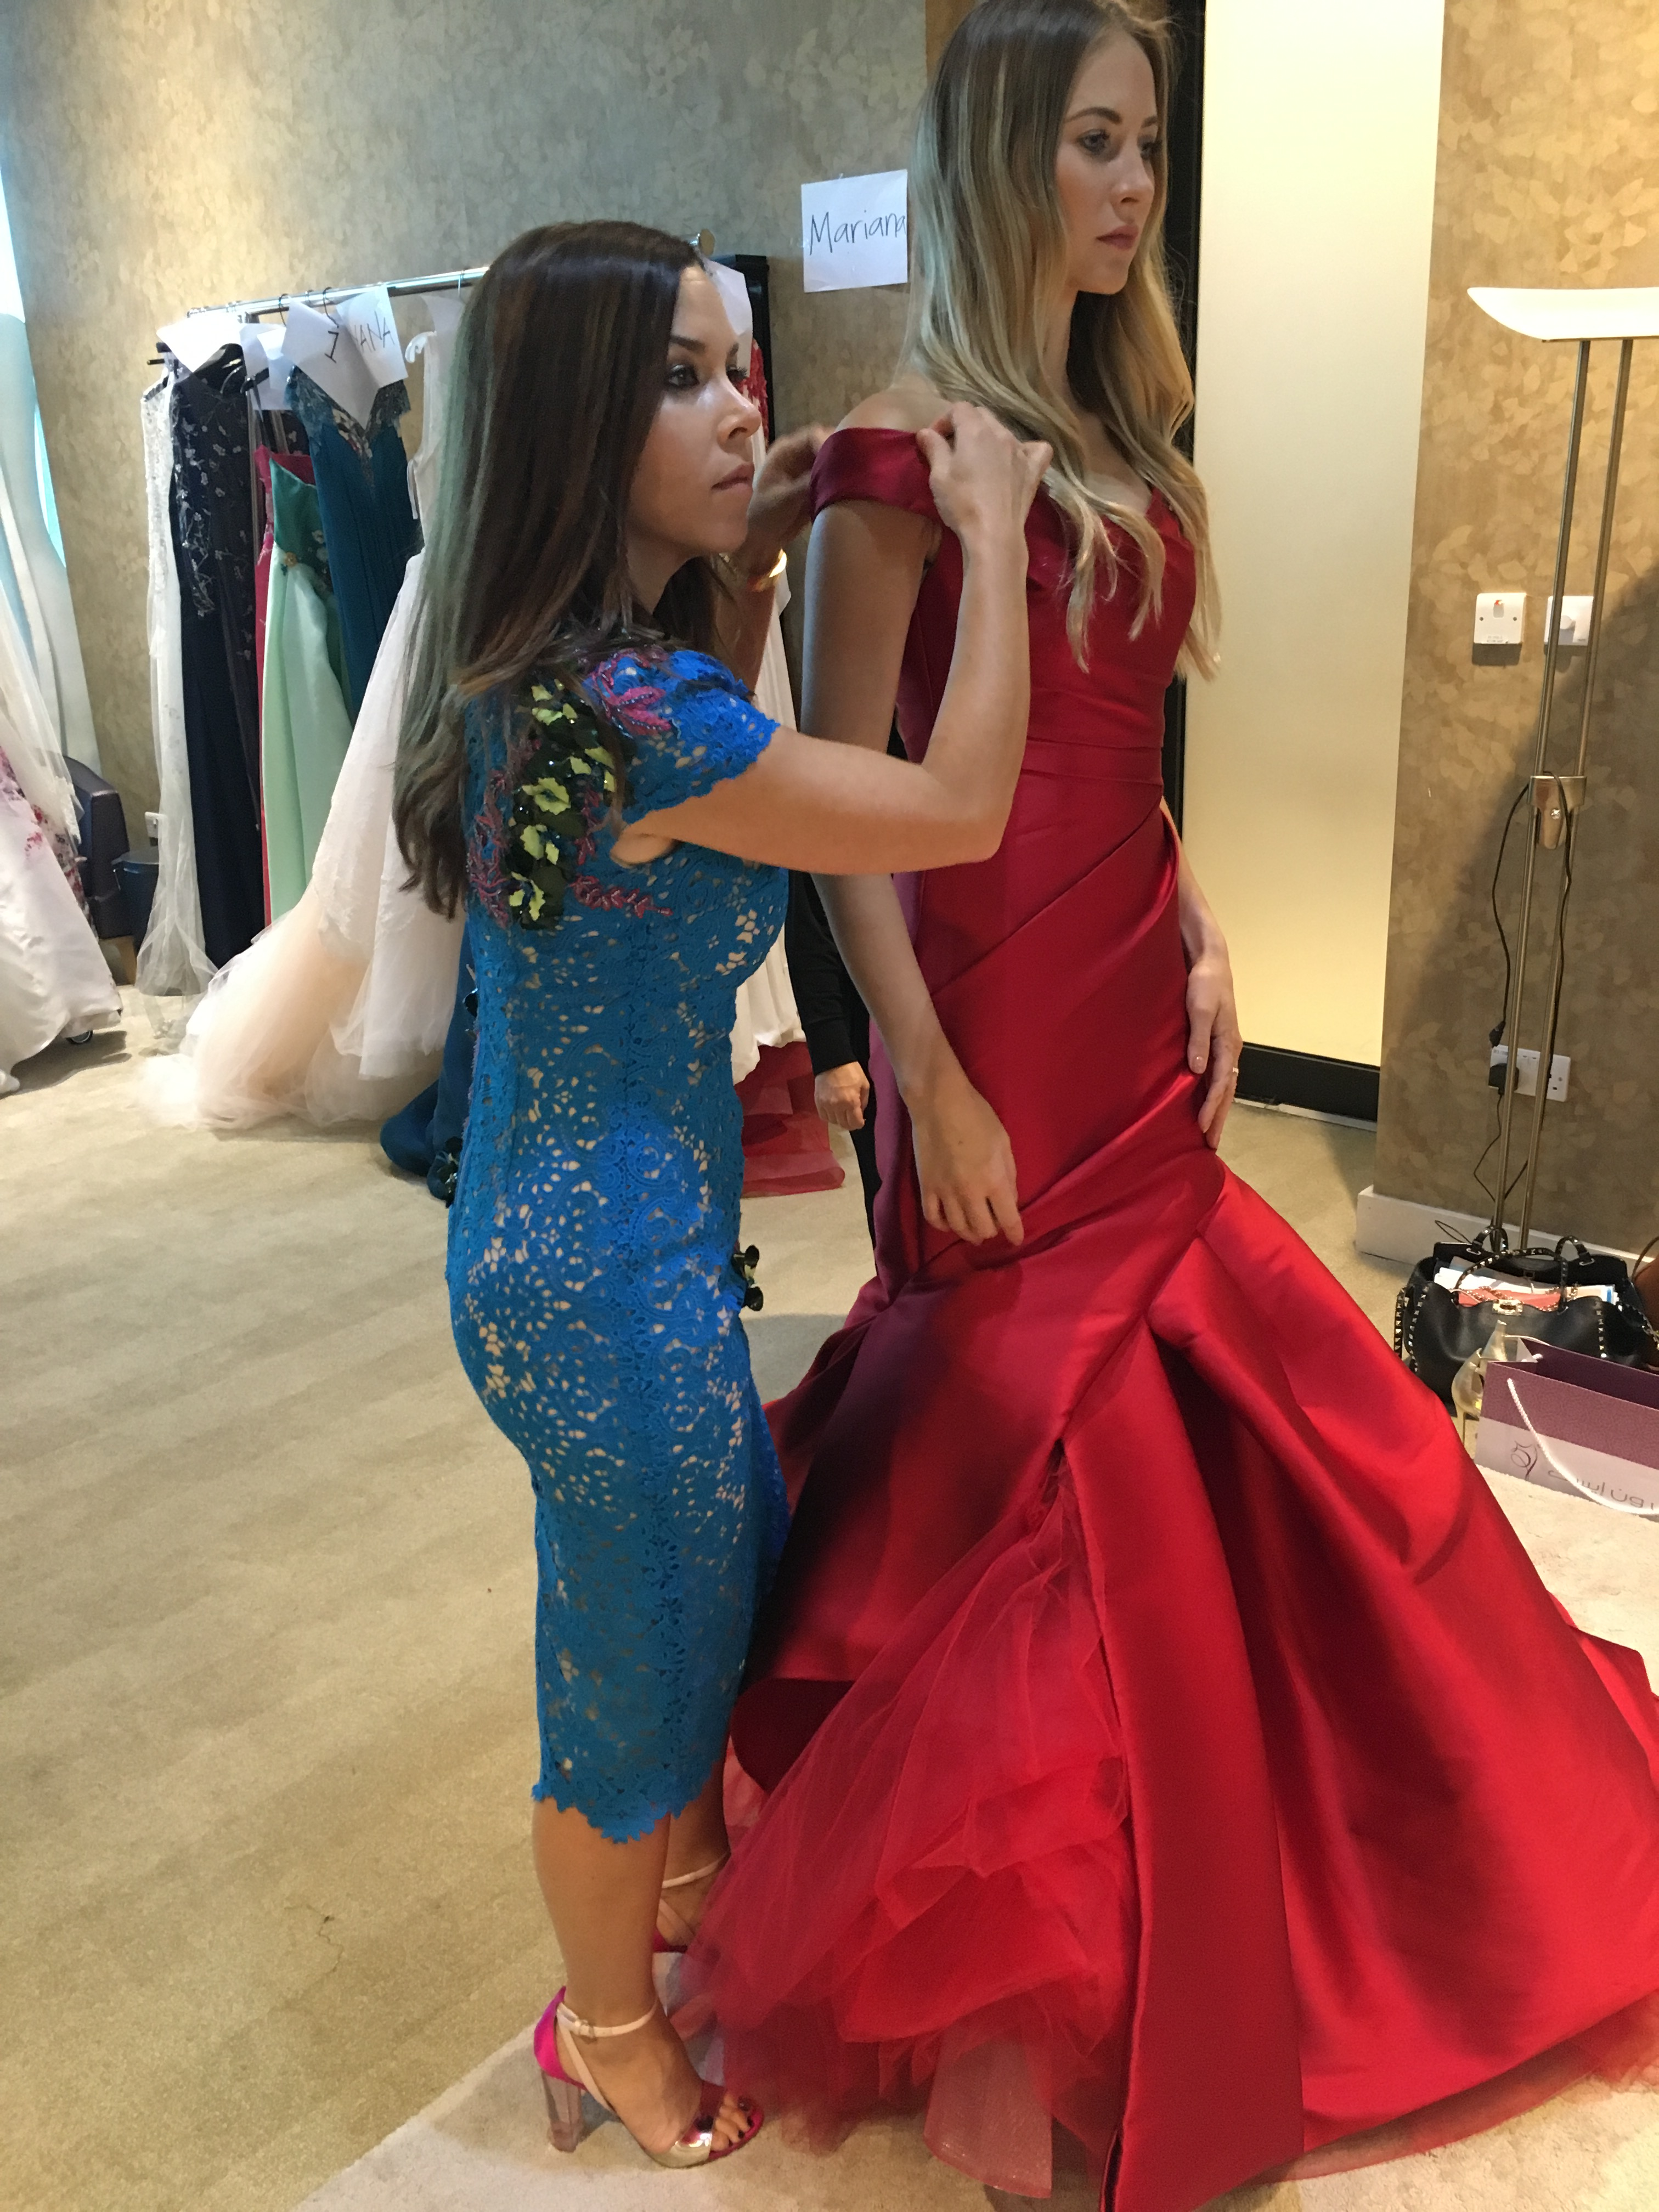 Monique Lhuillier travel diary: behind the scenes fitting before the show